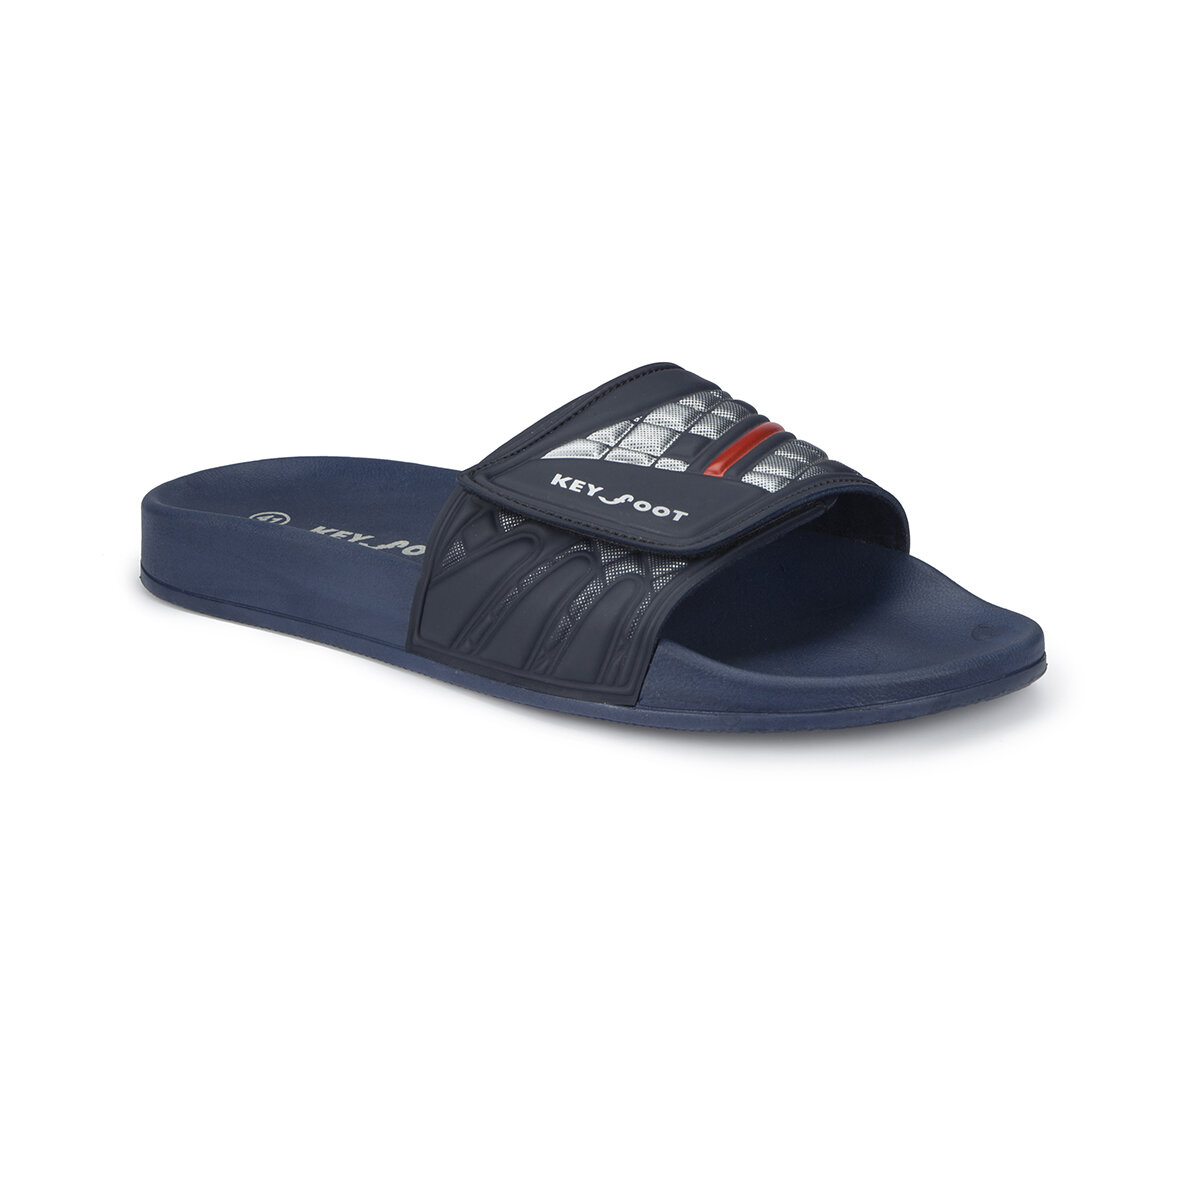 FLO 81.452199.M Navy Blue Male Slippers Polaris